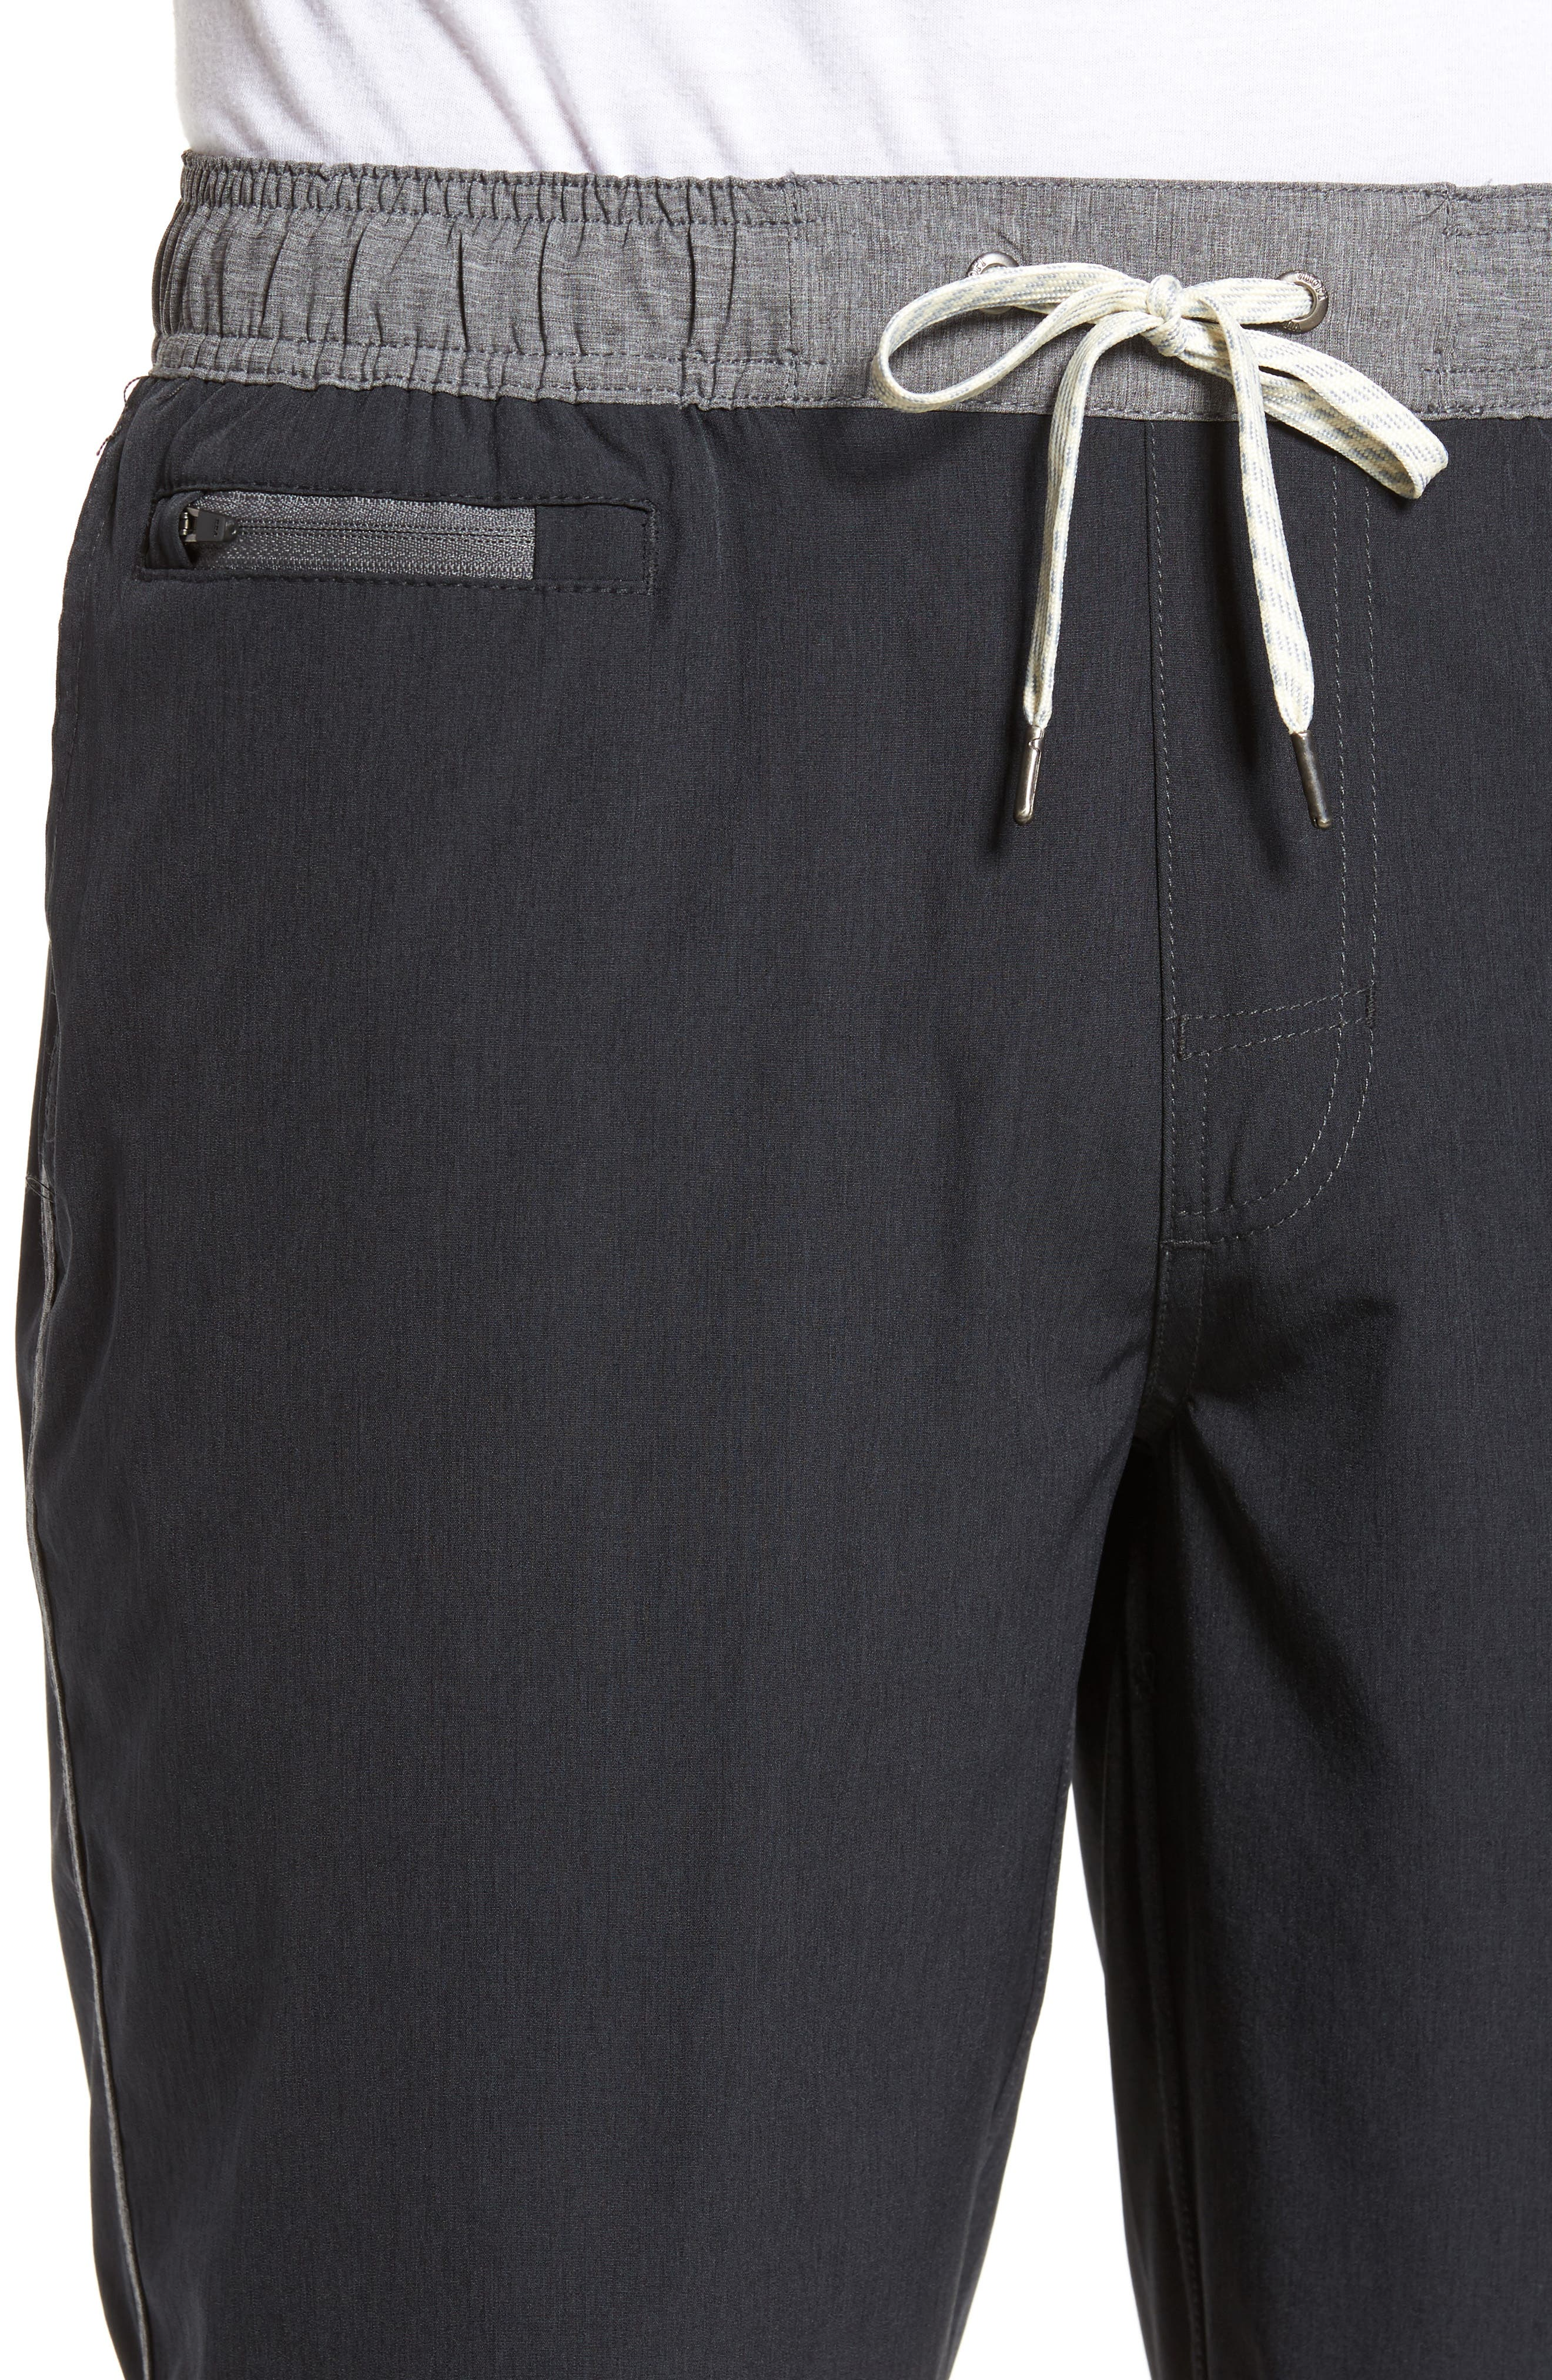 Banks Performance Hybrid Shorts,                             Alternate thumbnail 4, color,                             BLACK LINEN TEXTURE